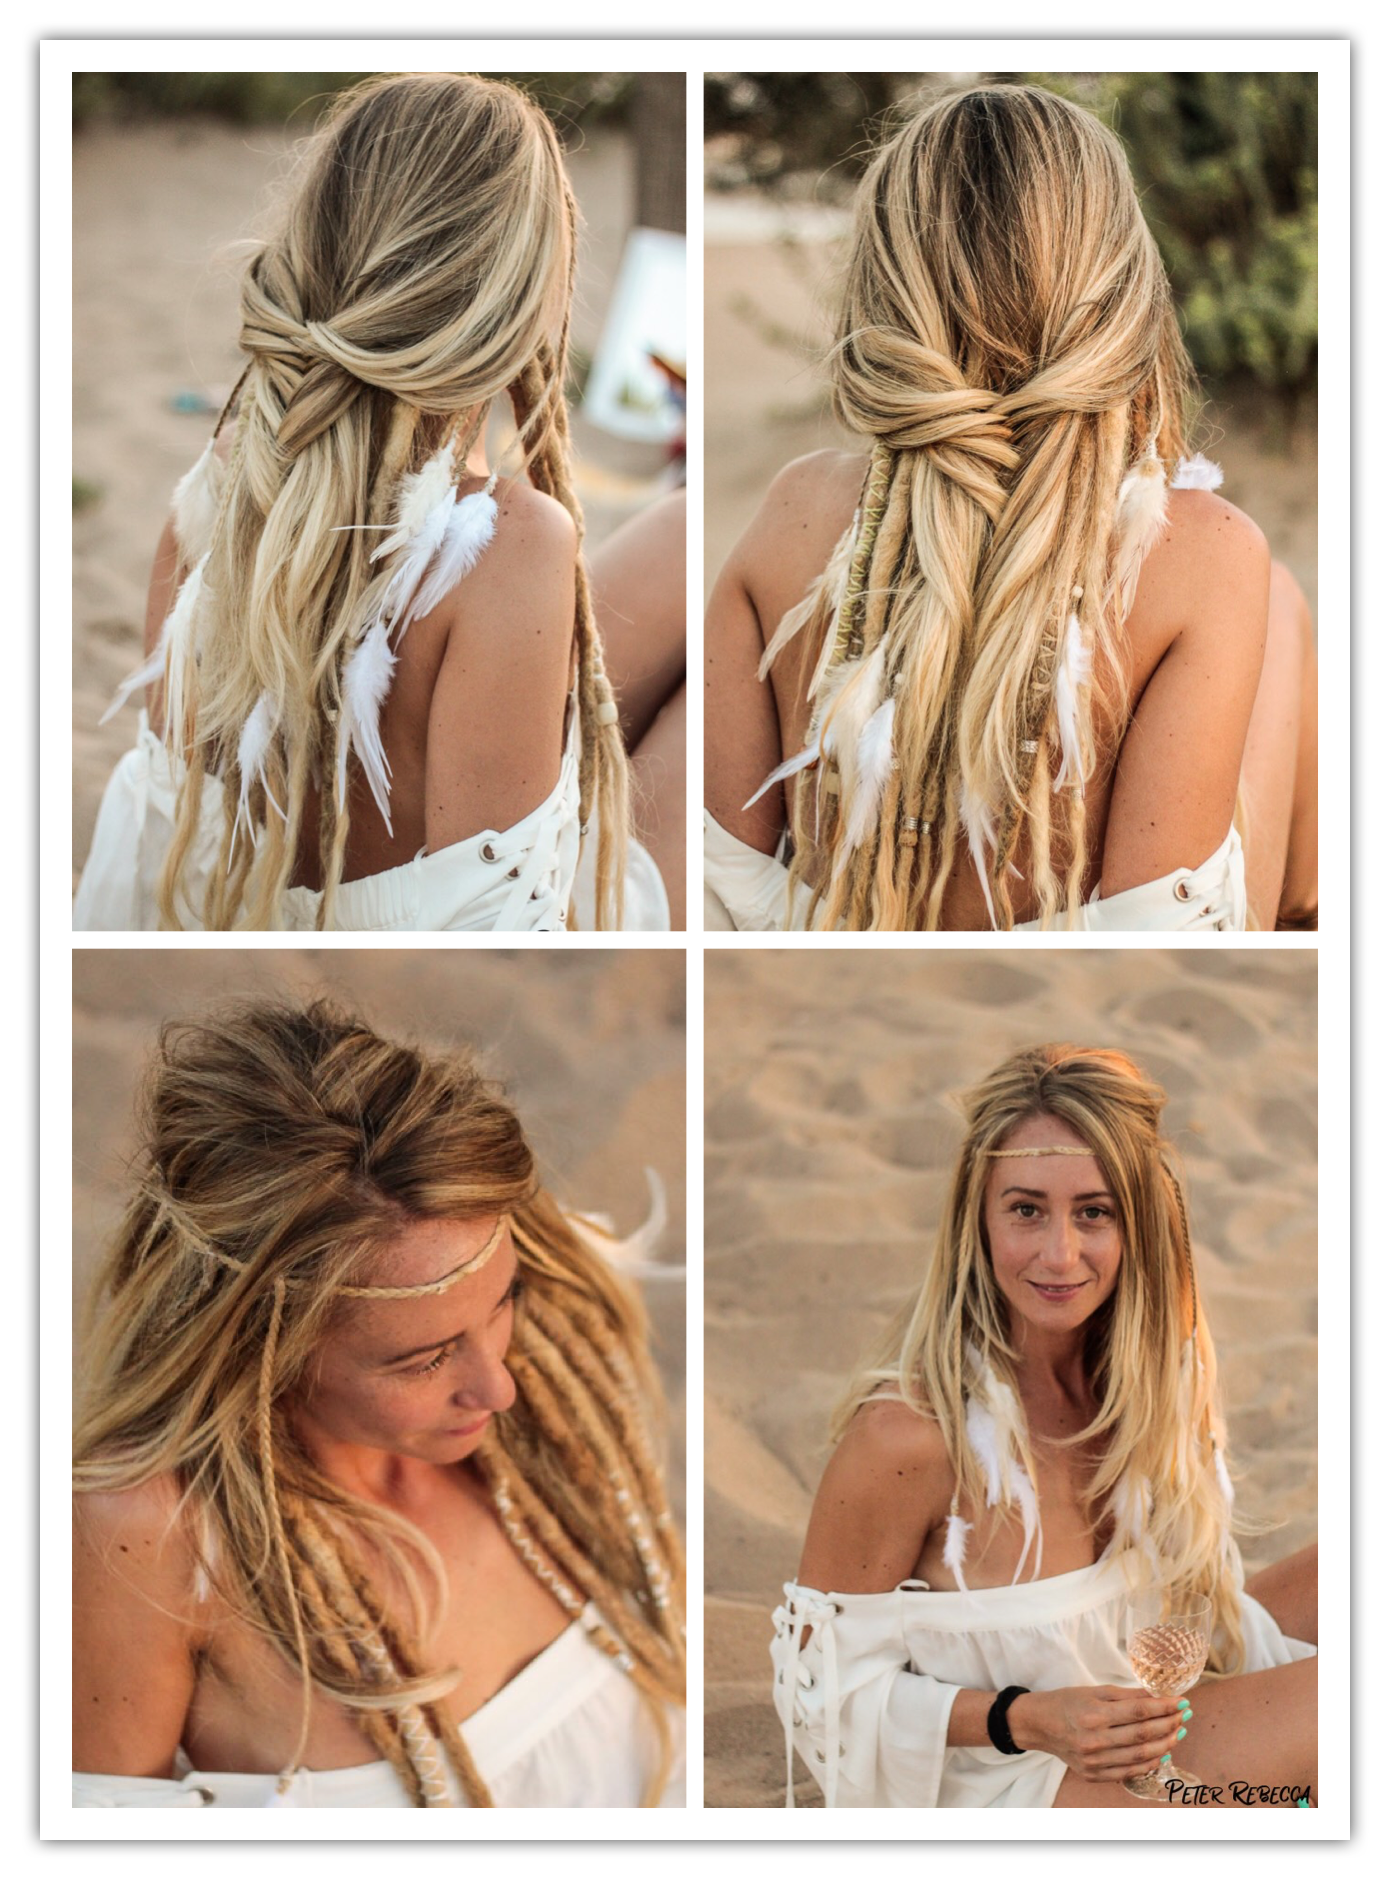 Pin By Amy Tarasevic Mccully On Beauty Normal Hair Dread Hairstyles Hair Styles